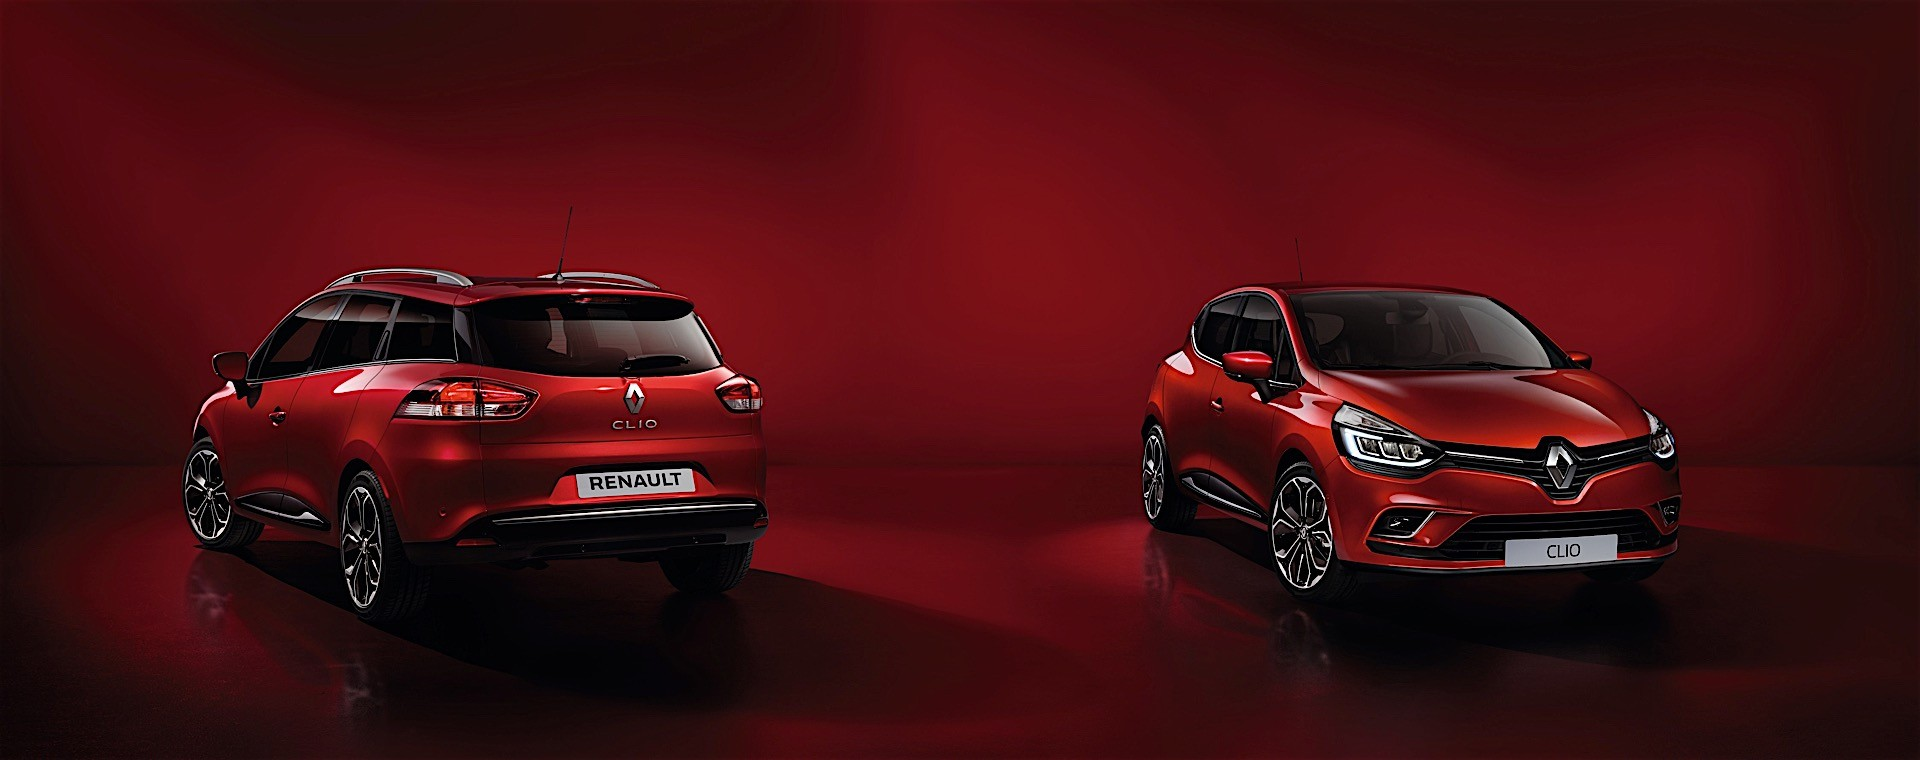 Elon Musk Car In Spac Wallpaper 2017 Renault Clio Facelift Revealed Will Be Launched At